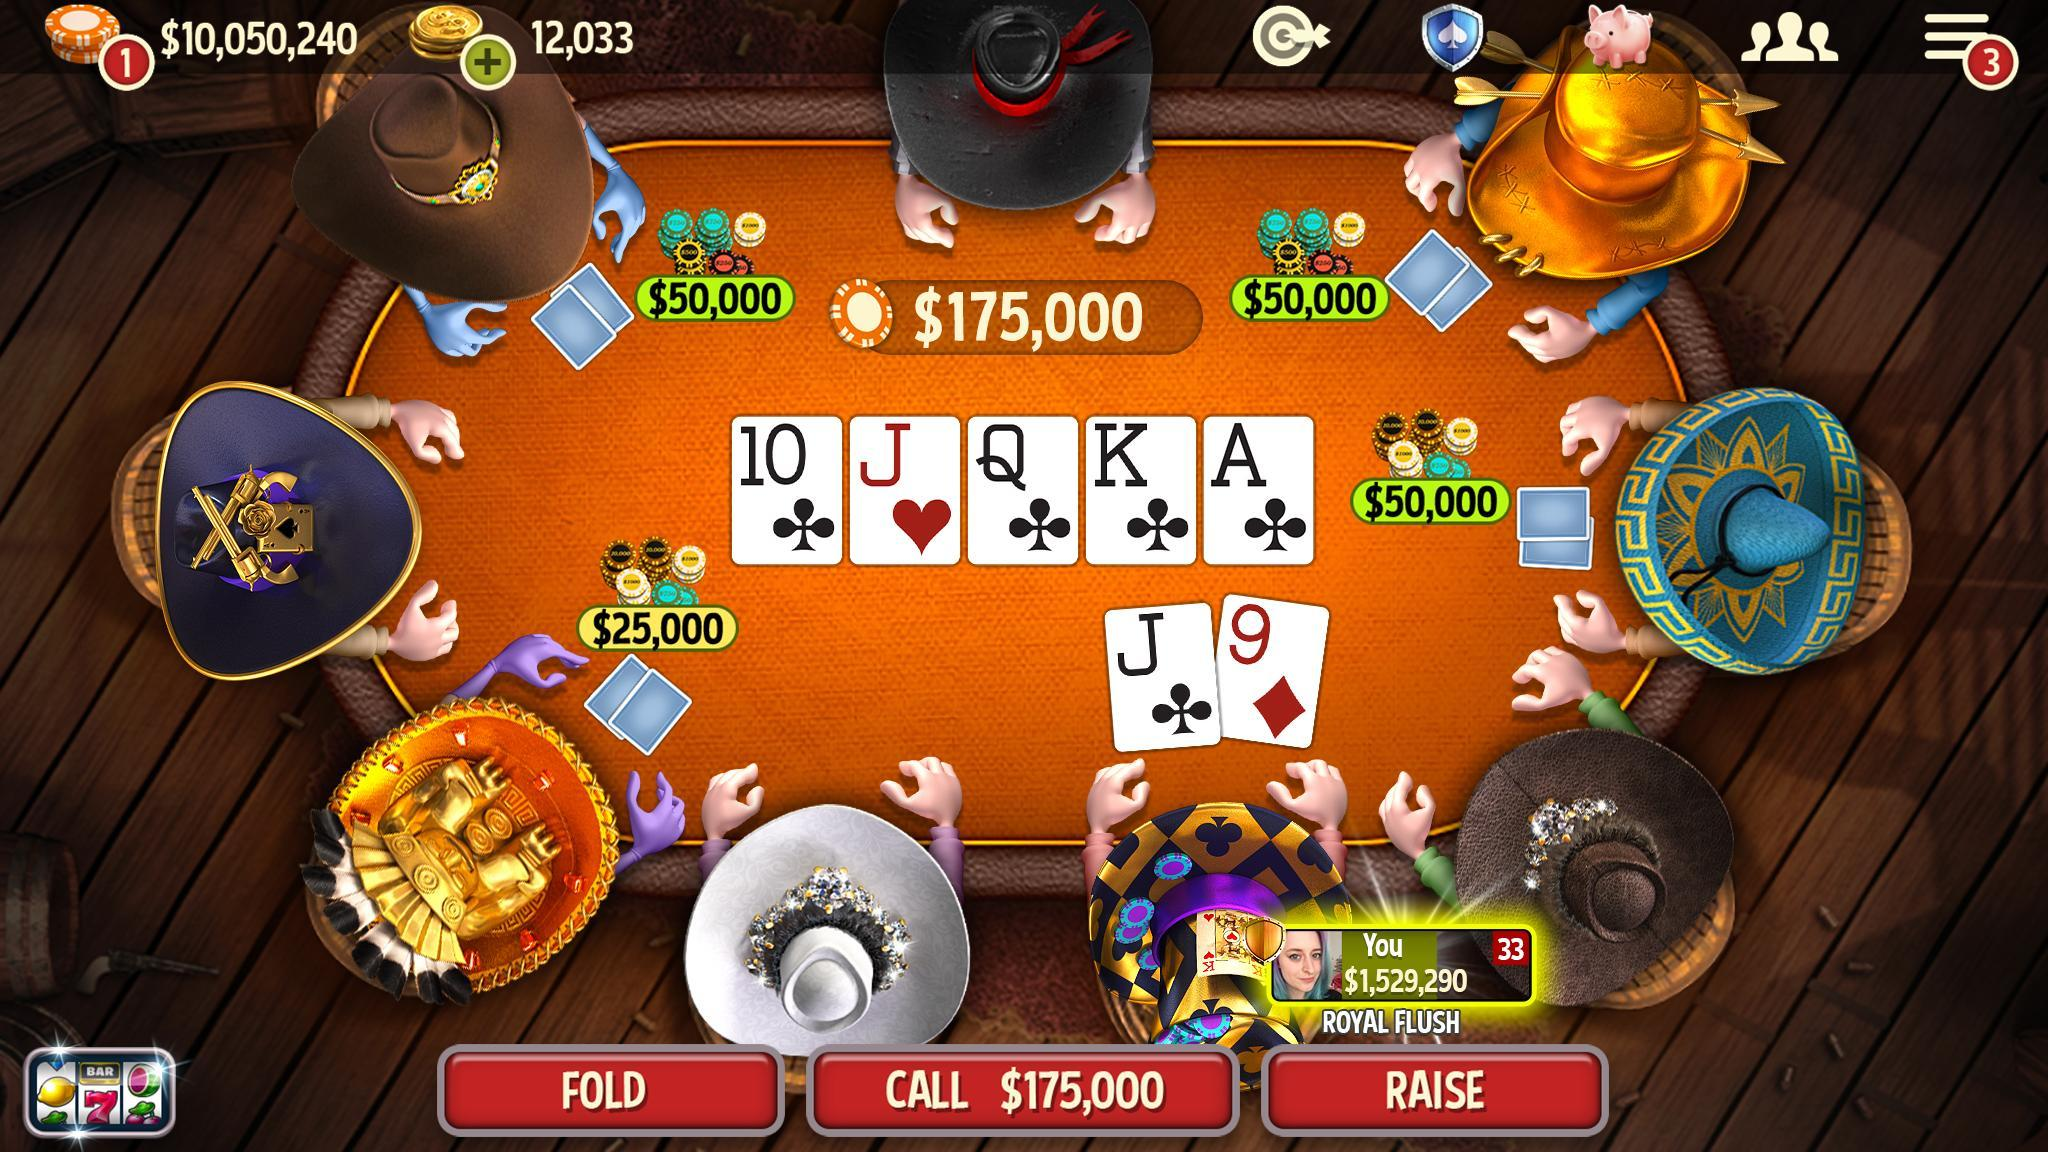 Governor of Poker 3 - Texas Holdem With Friends 6.9.1 Screenshot 2